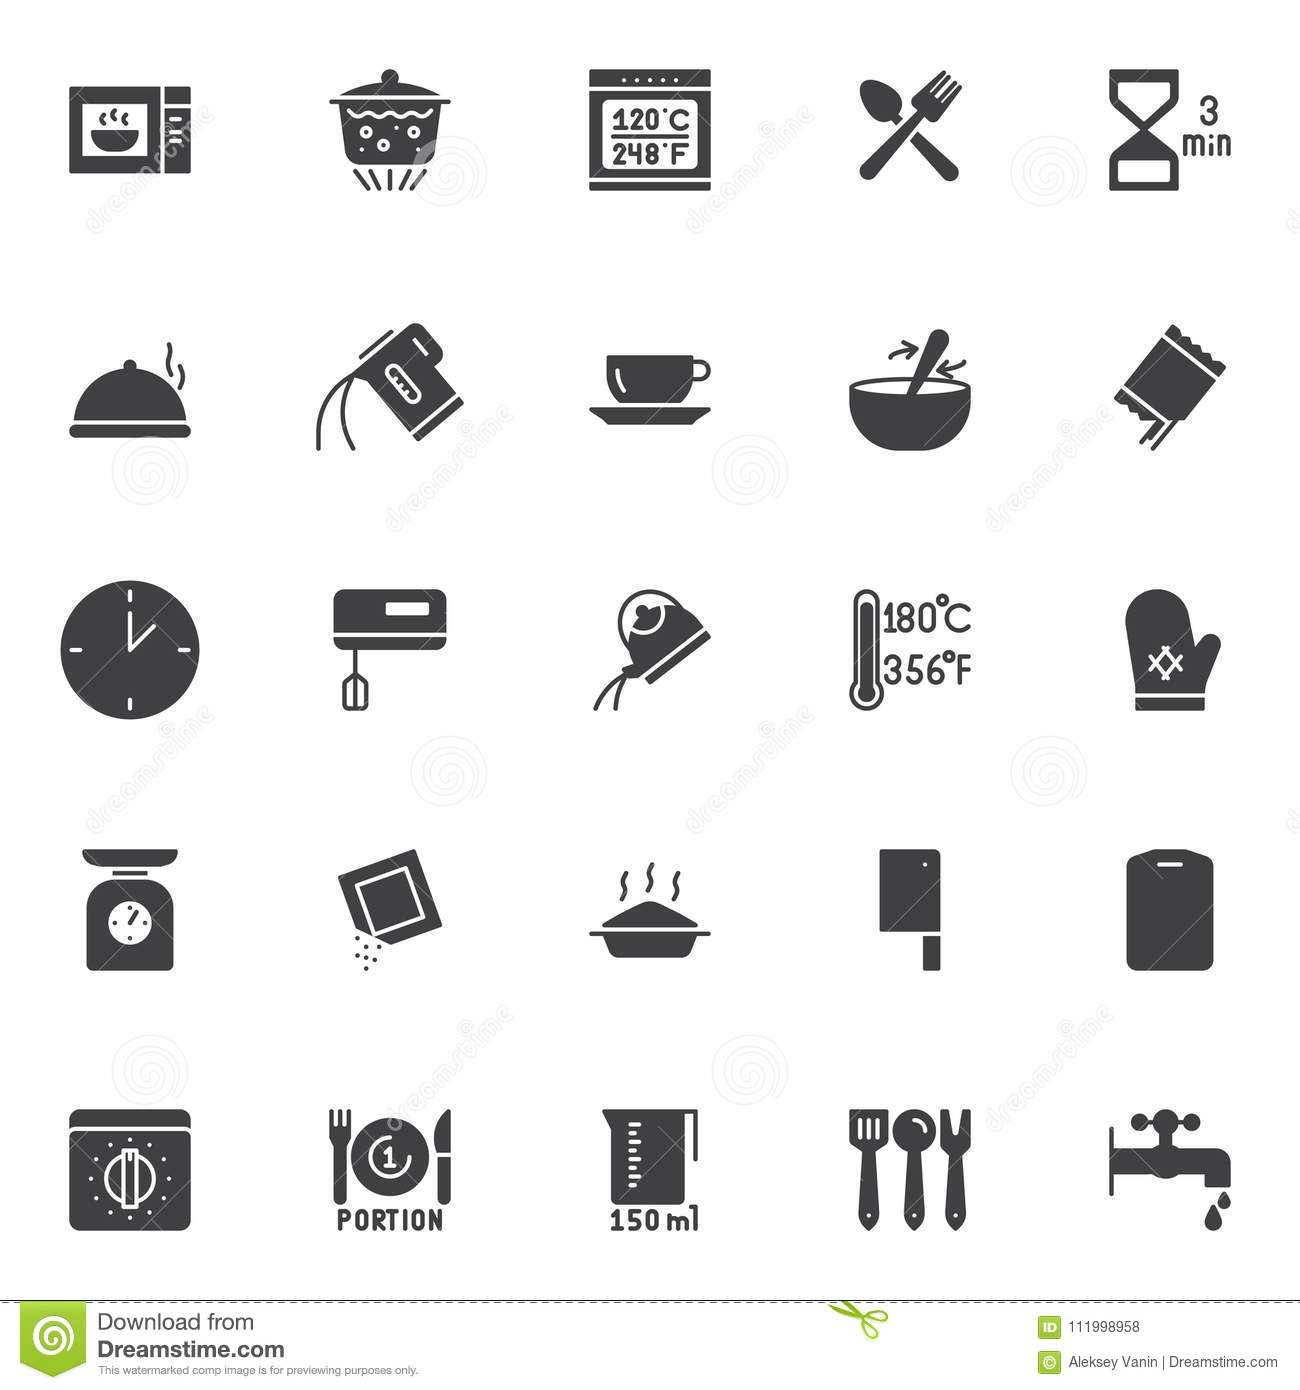 Instructions Cartoons, Illustrations & Vector Stock Images